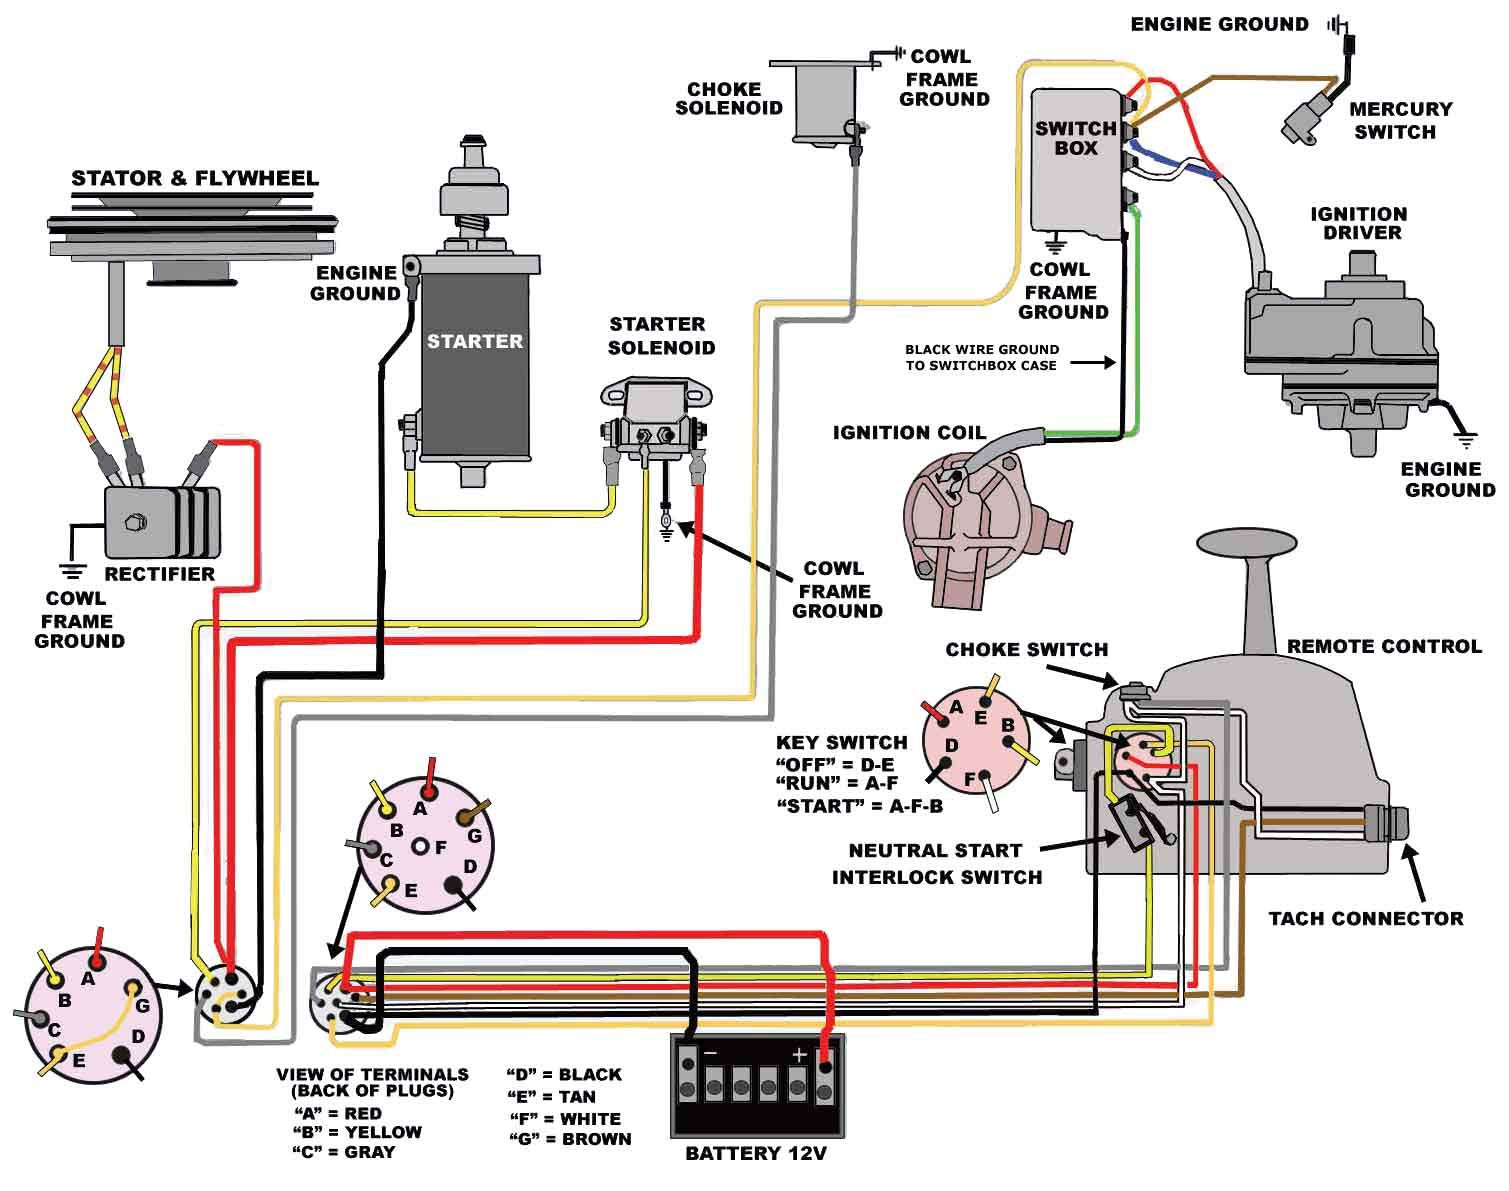 13cfb2d962bcd0c03103625817b7d51d mercury outboard wiring diagram diagram pinterest mercury i need a wiring diagram at alyssarenee.co